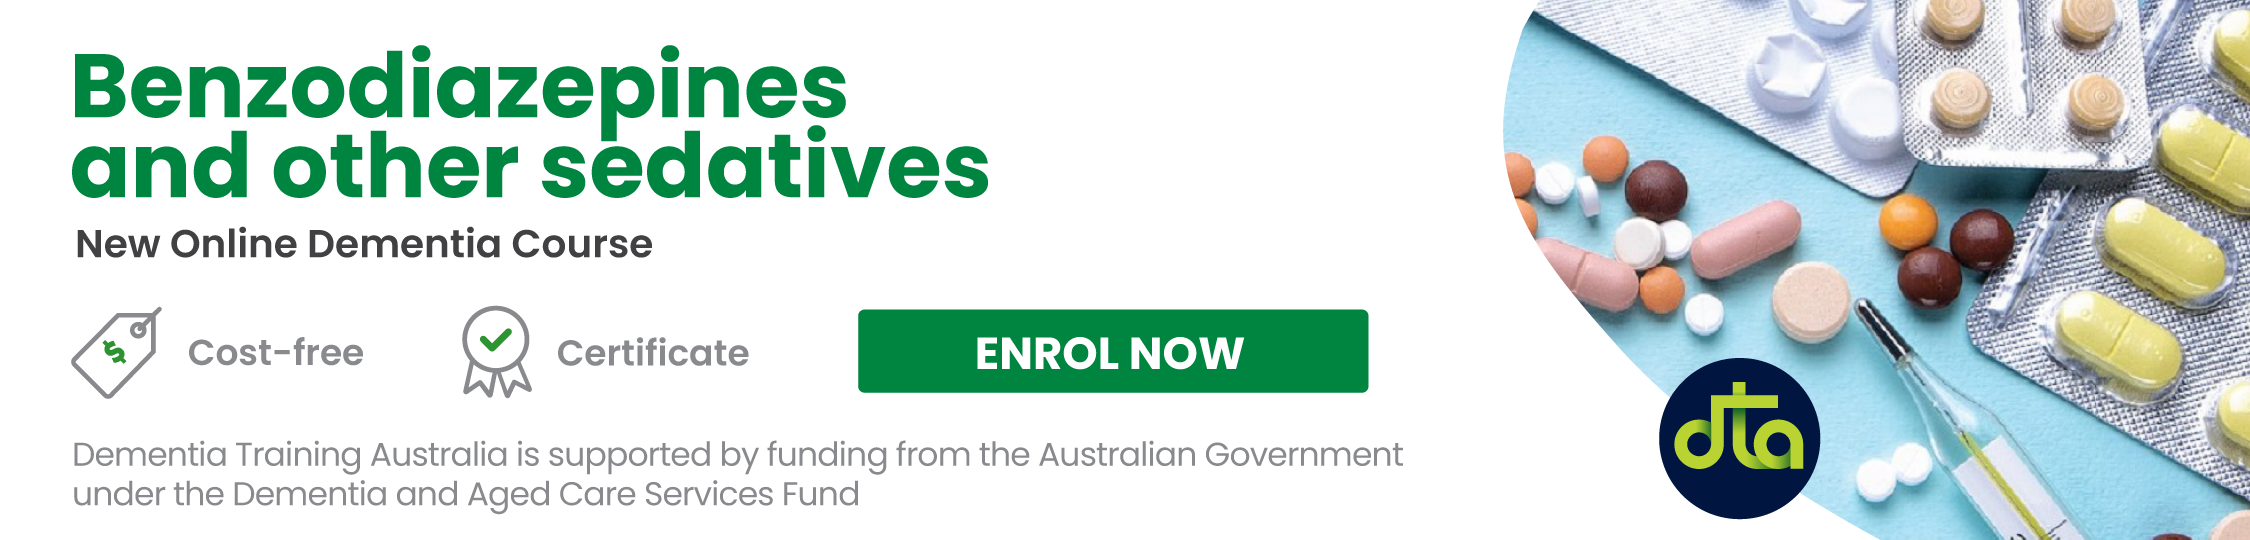 Benzodiazepines and other sedatives is a new online course. It is cost-free and comes with a certificate of completion.  Use the following link to enrol on the course - https://kapara.rdbk.com.au/landers/7b631a.htmlhttps://bit.ly/DTA_sedatives-course  Dementia Training Australia is supported by funding from the Australian Government under the Dementia and Aged Care Services Fund.  The image displays numerous pills in blister packs and scattered freely alongside a thermometer. It also includes the DTA logo'